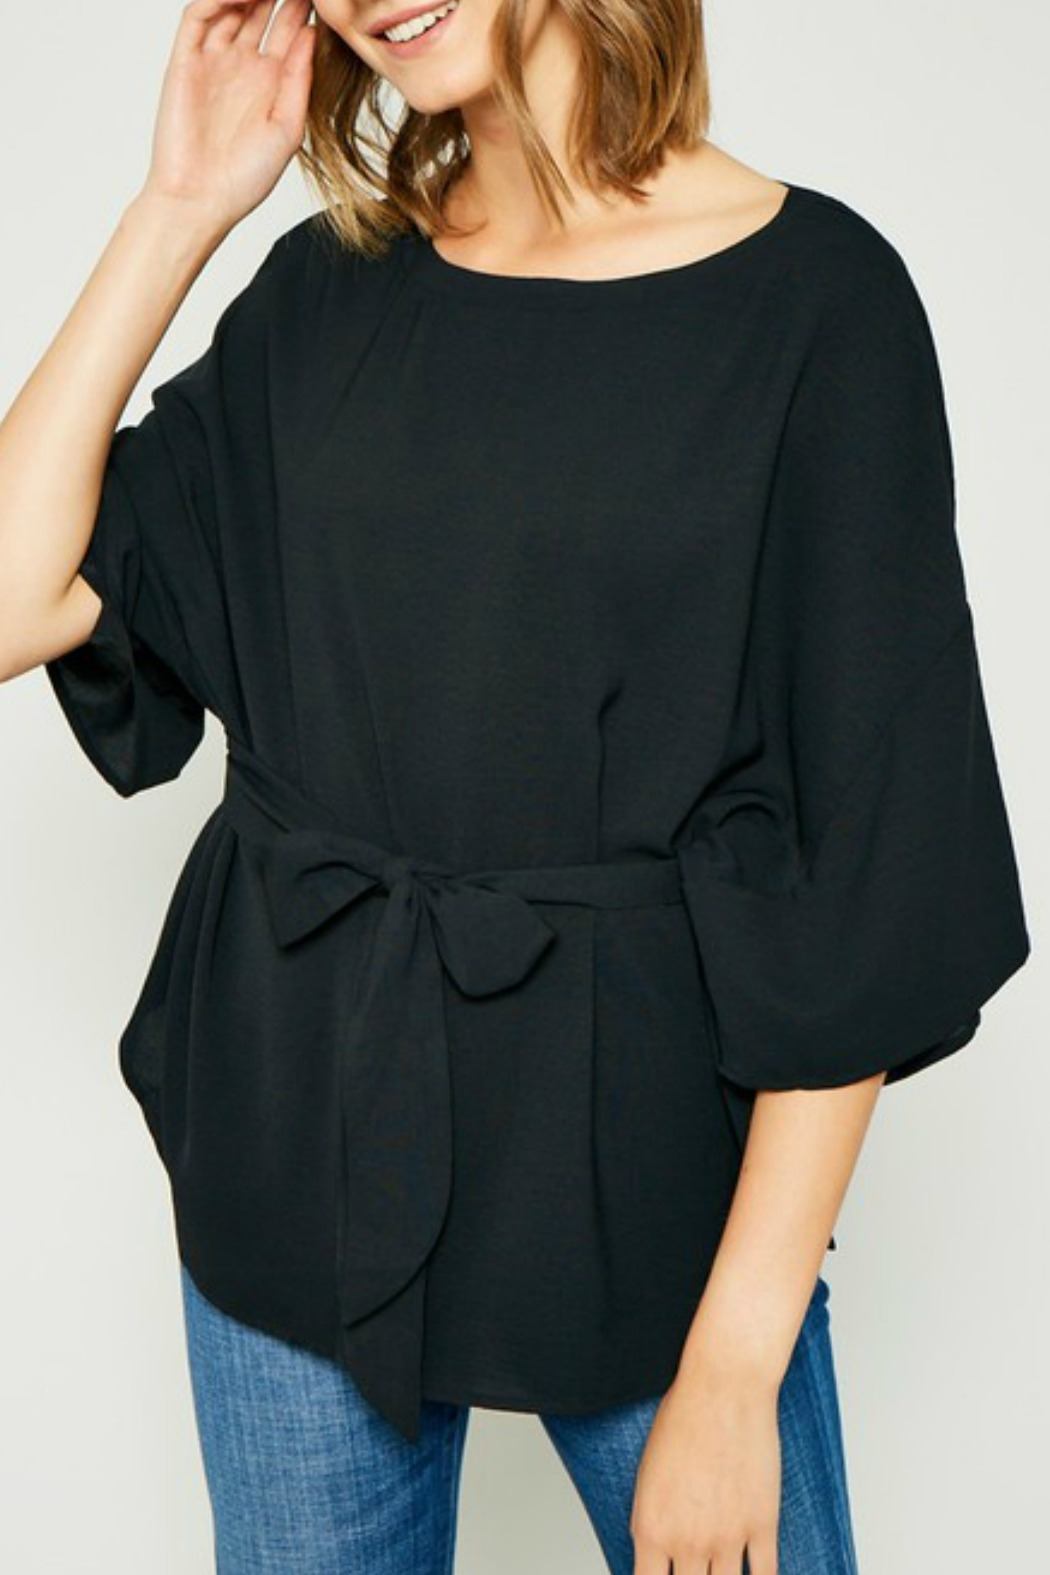 Hayden Los Angeles Olive Batwing Front-Tie-Blouse - Main Image